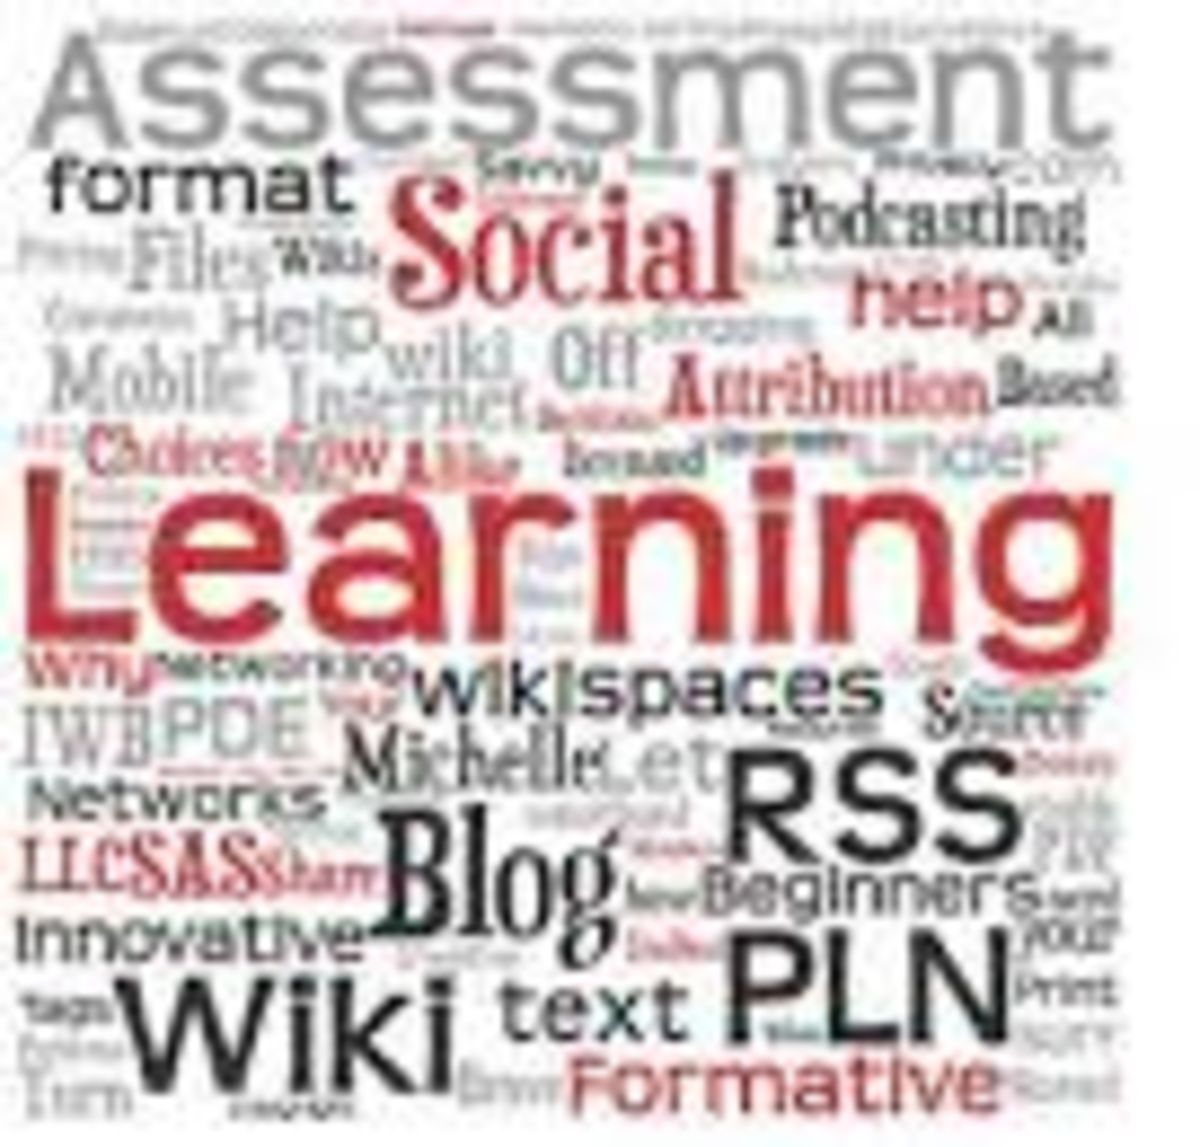 Headline for Educational Technology BLOGs and Websites for Teachers